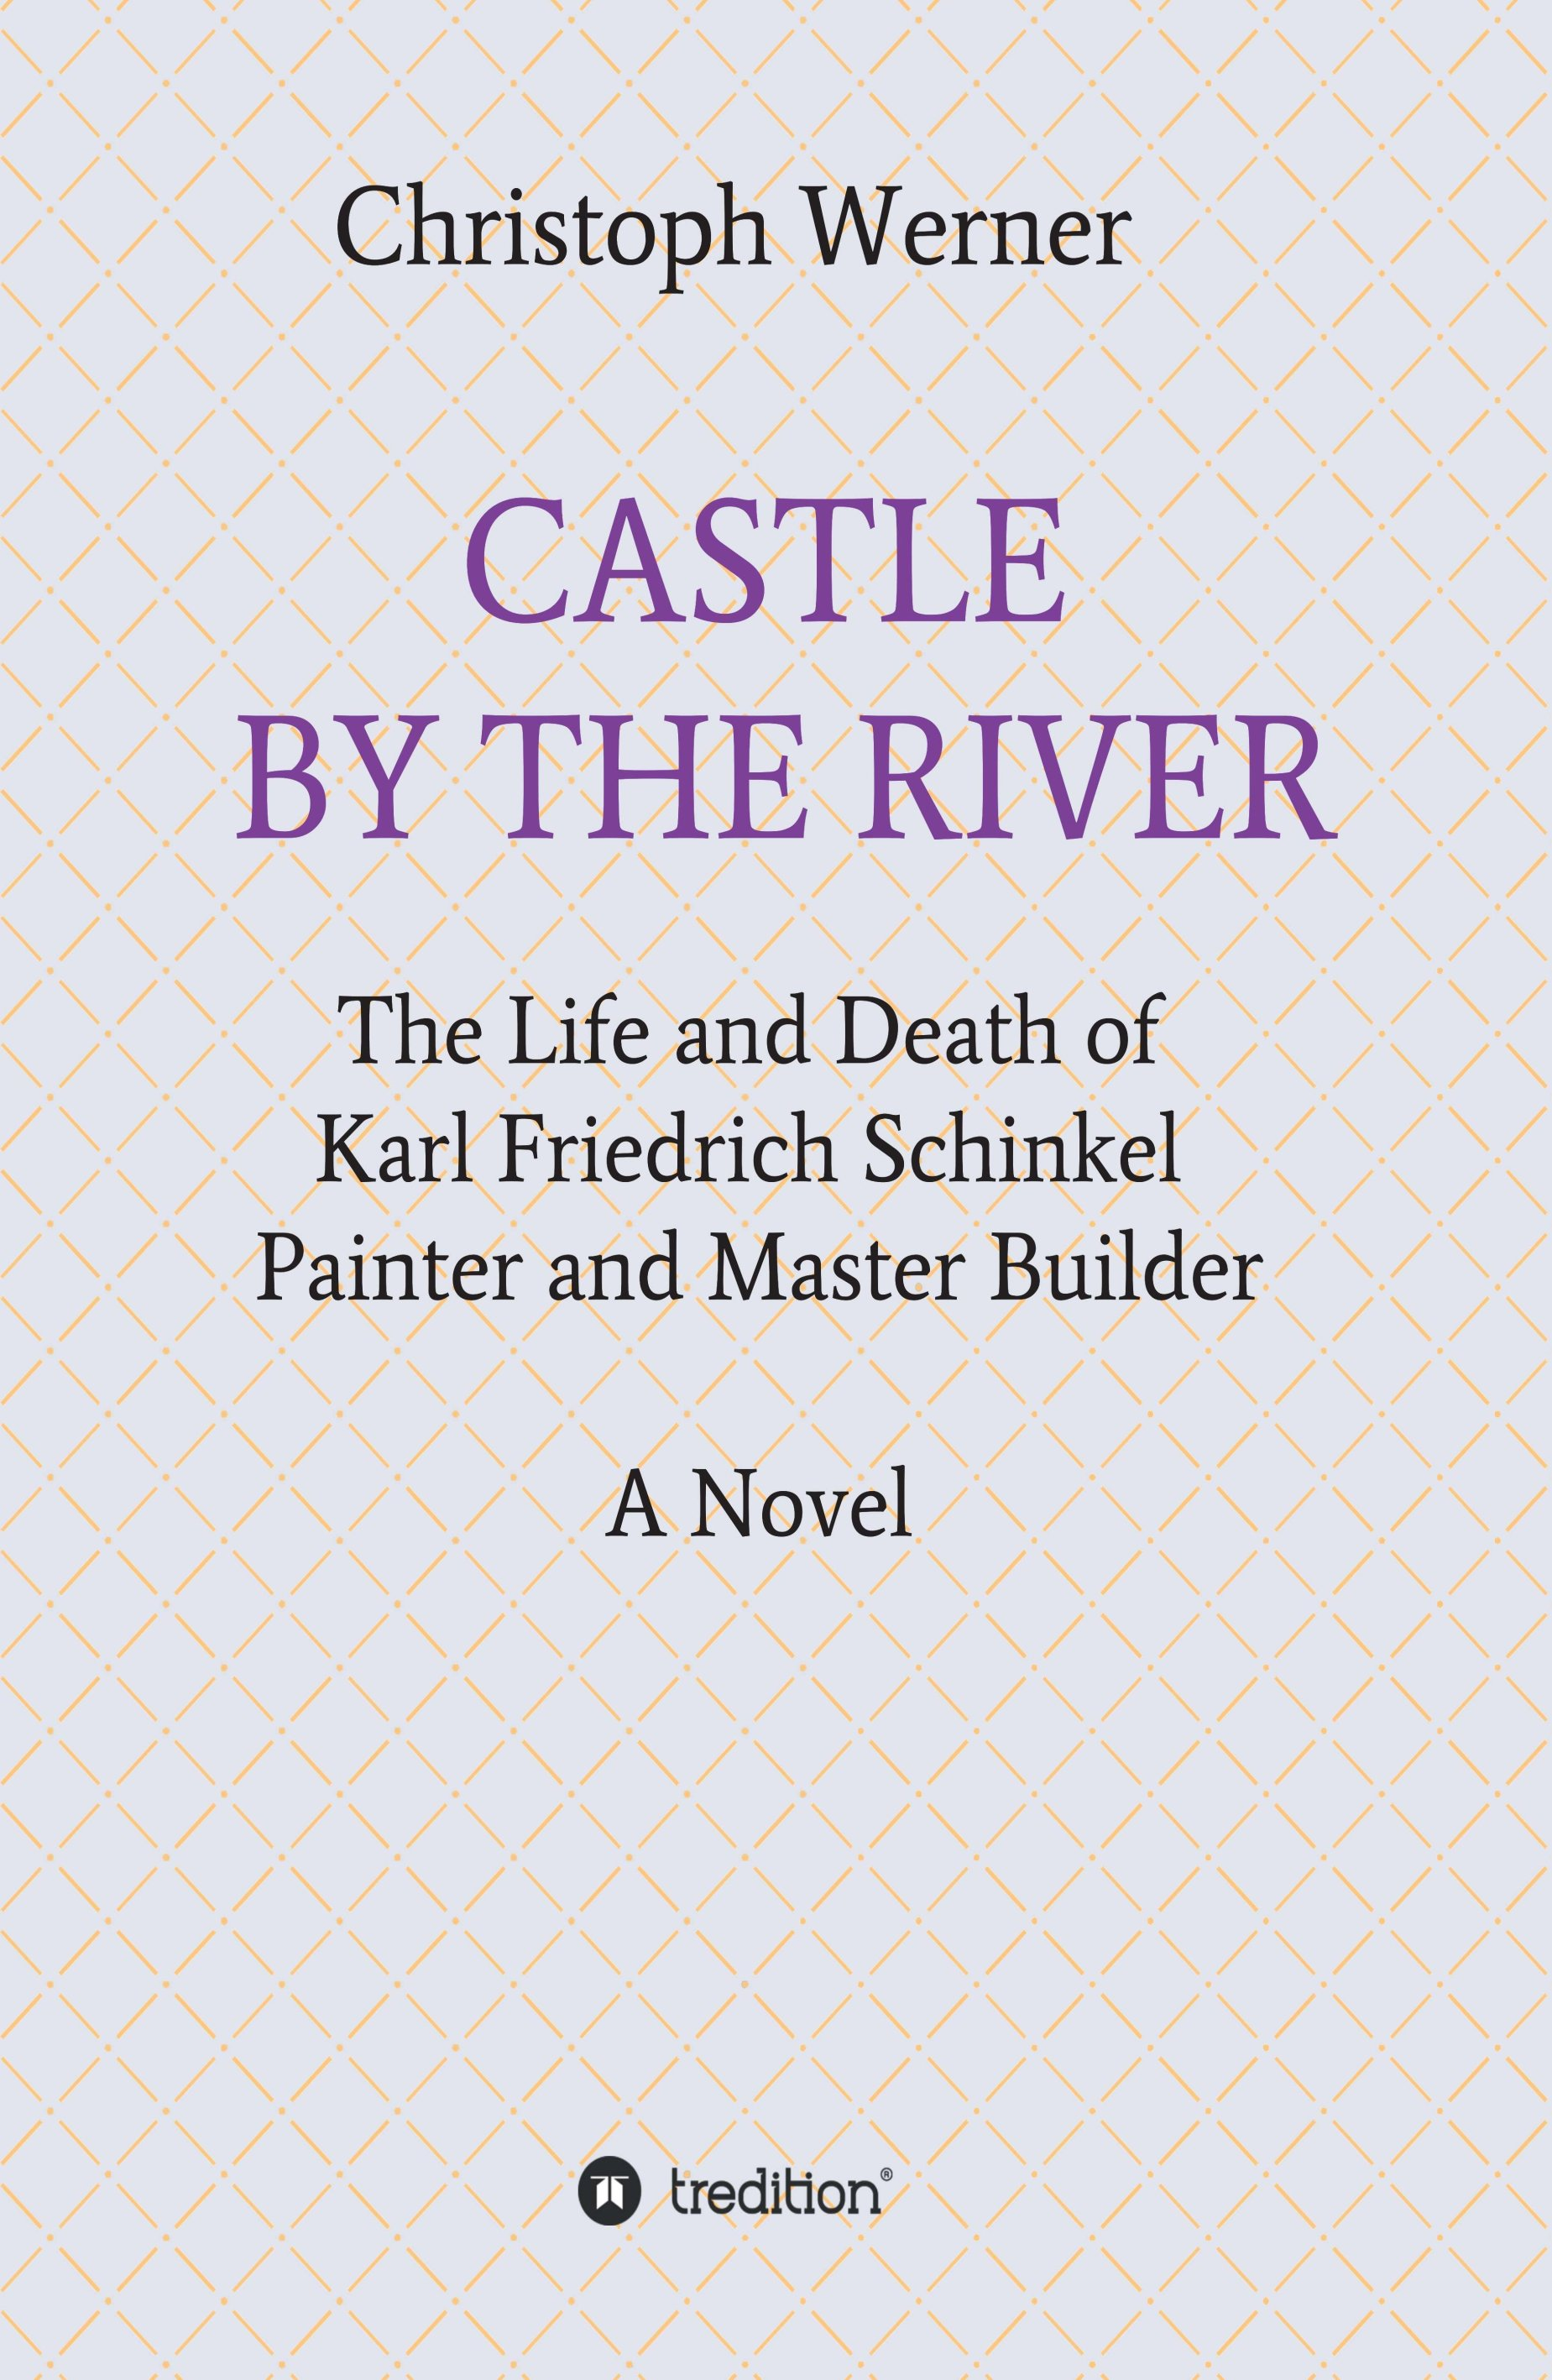 CASTLE BY THE RIVER - The Life and Death of Karl Friedrich Schinkel, Painter and Master Builder